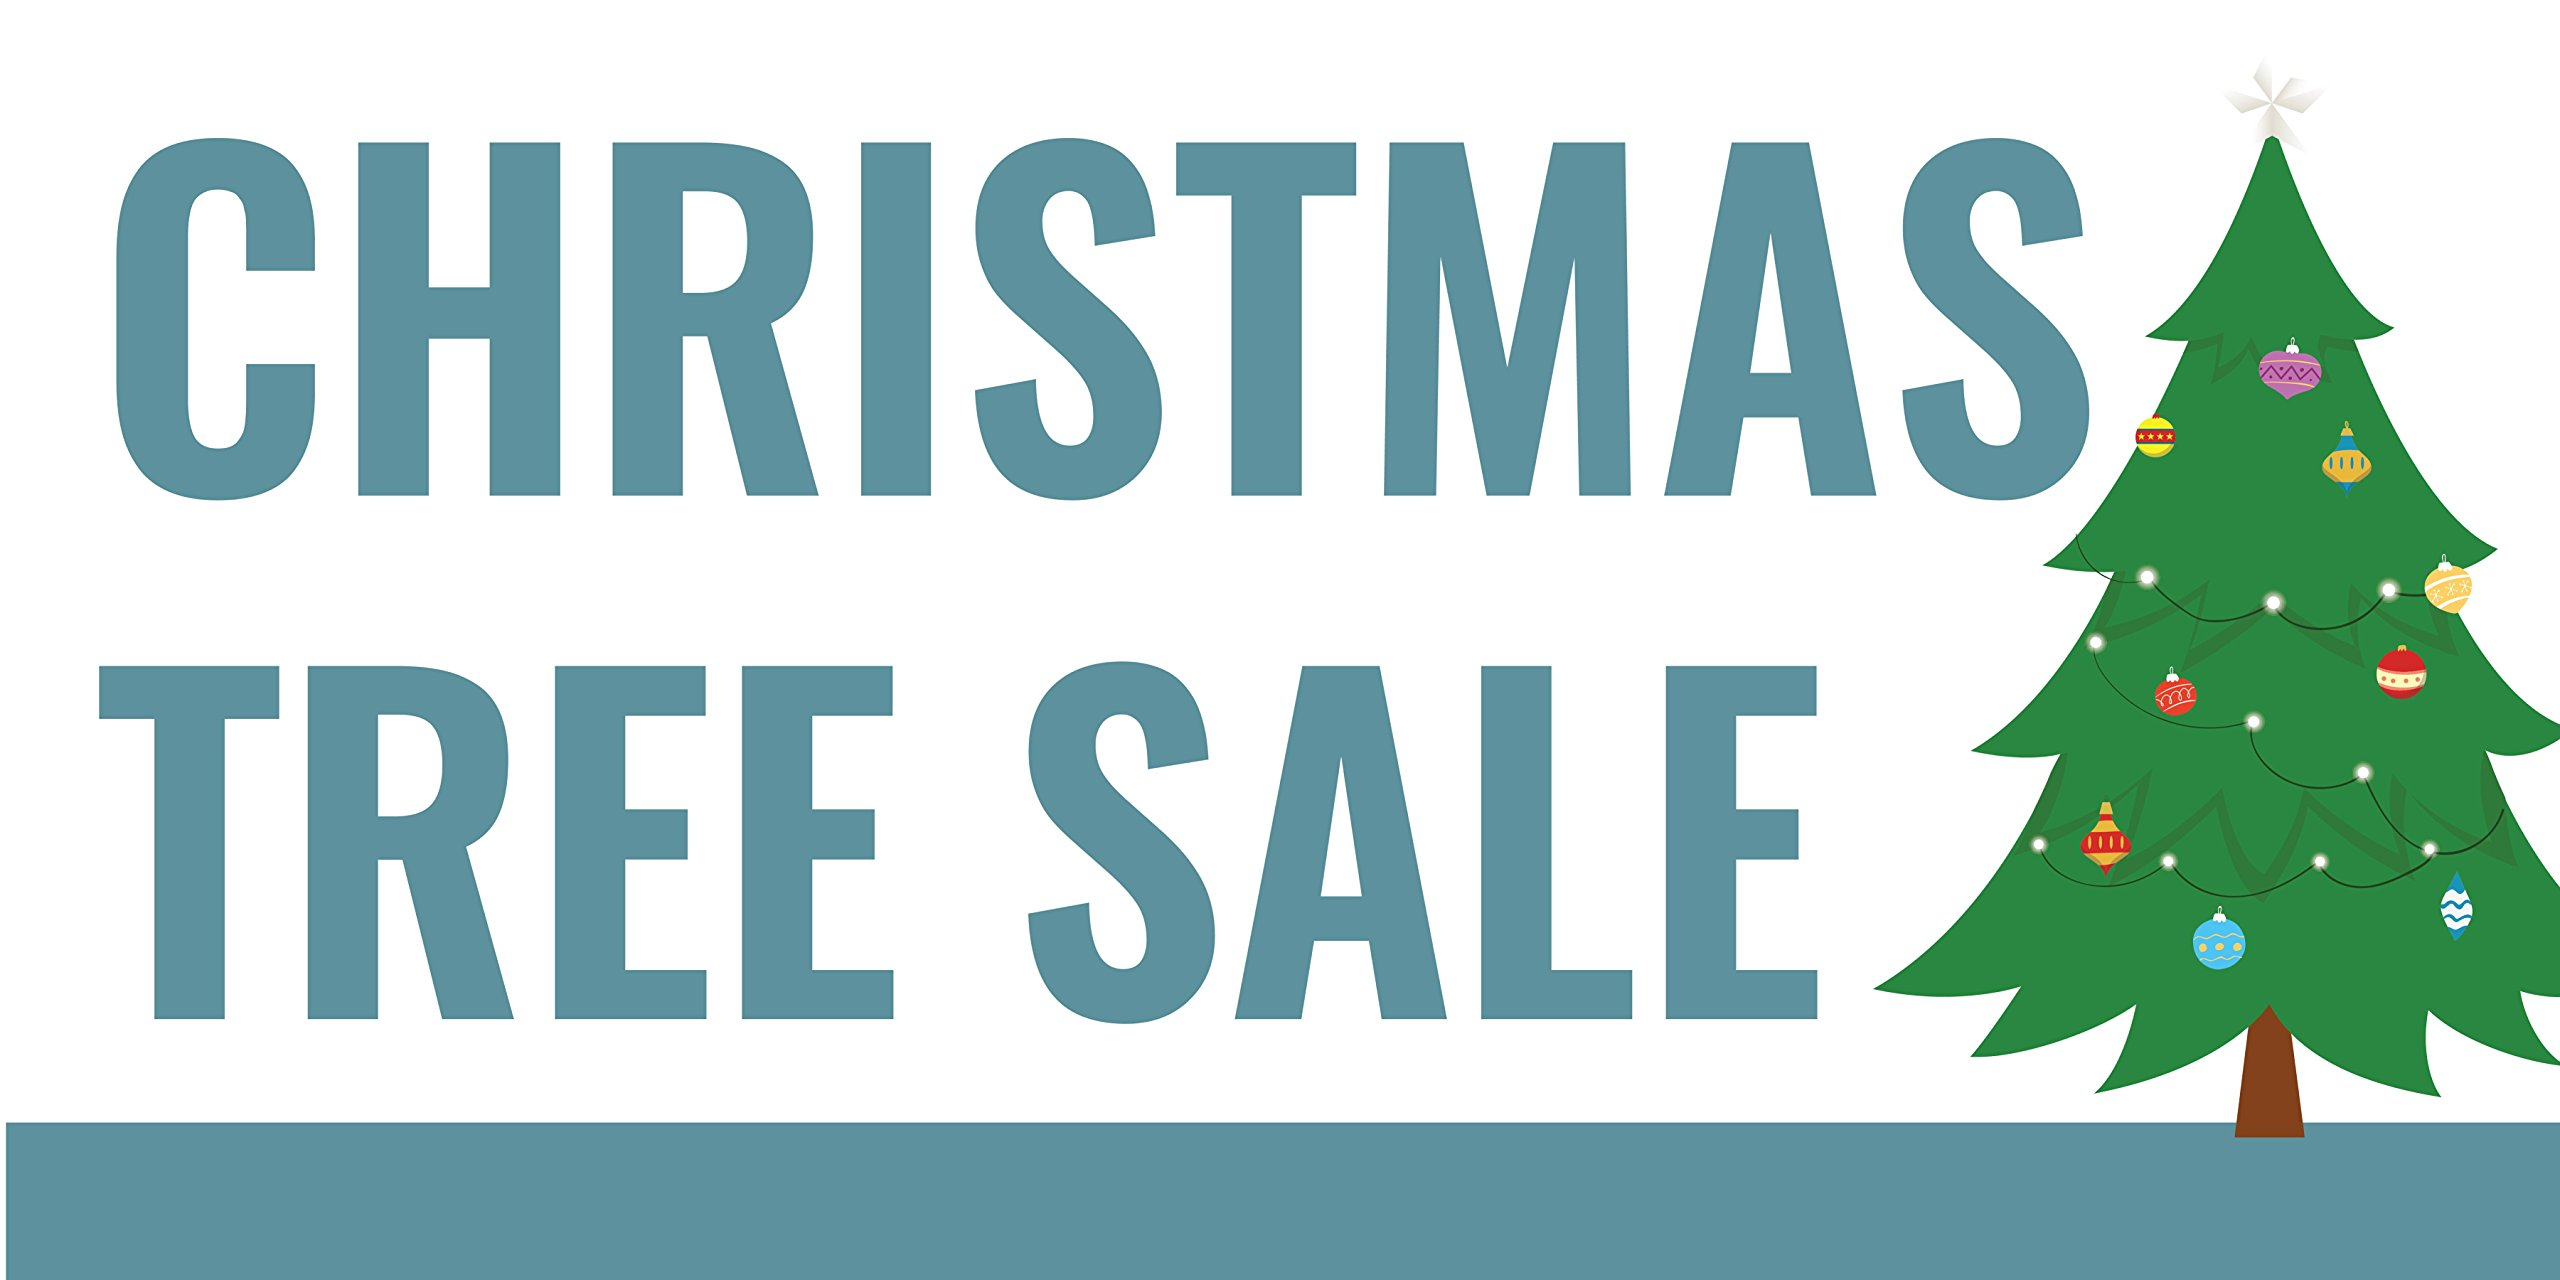 Pre-Printed Christmas Tree Sale Banner - Light Green (10' x 5') by Reliable Banner Sign Supply & Printing